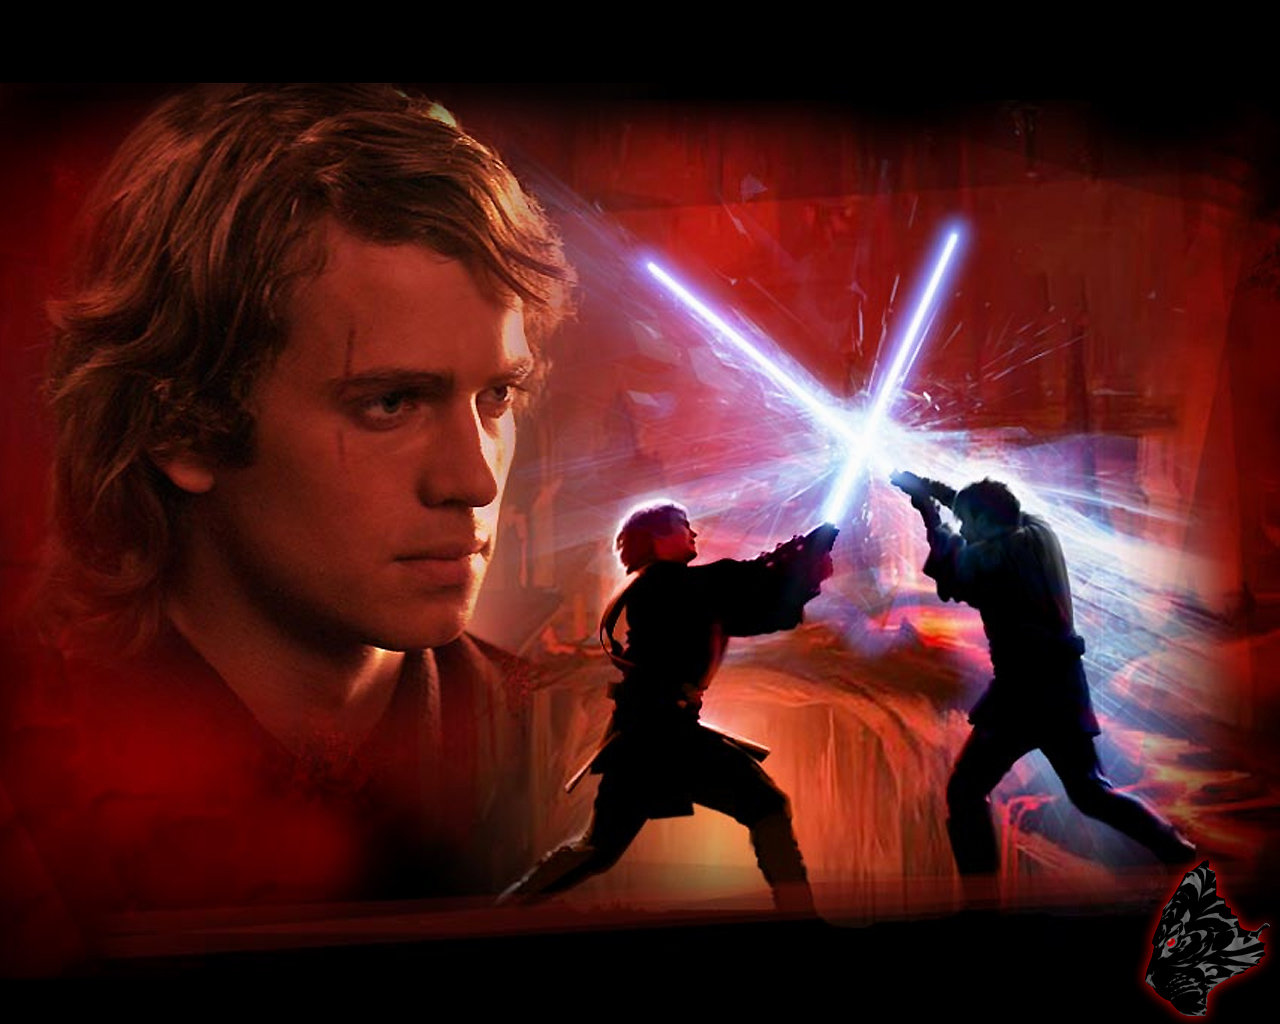 Star Wars Anakin Skywalker Wallpaper: Anakin Skywalker Wallpapers HD For Desktop Backgrounds